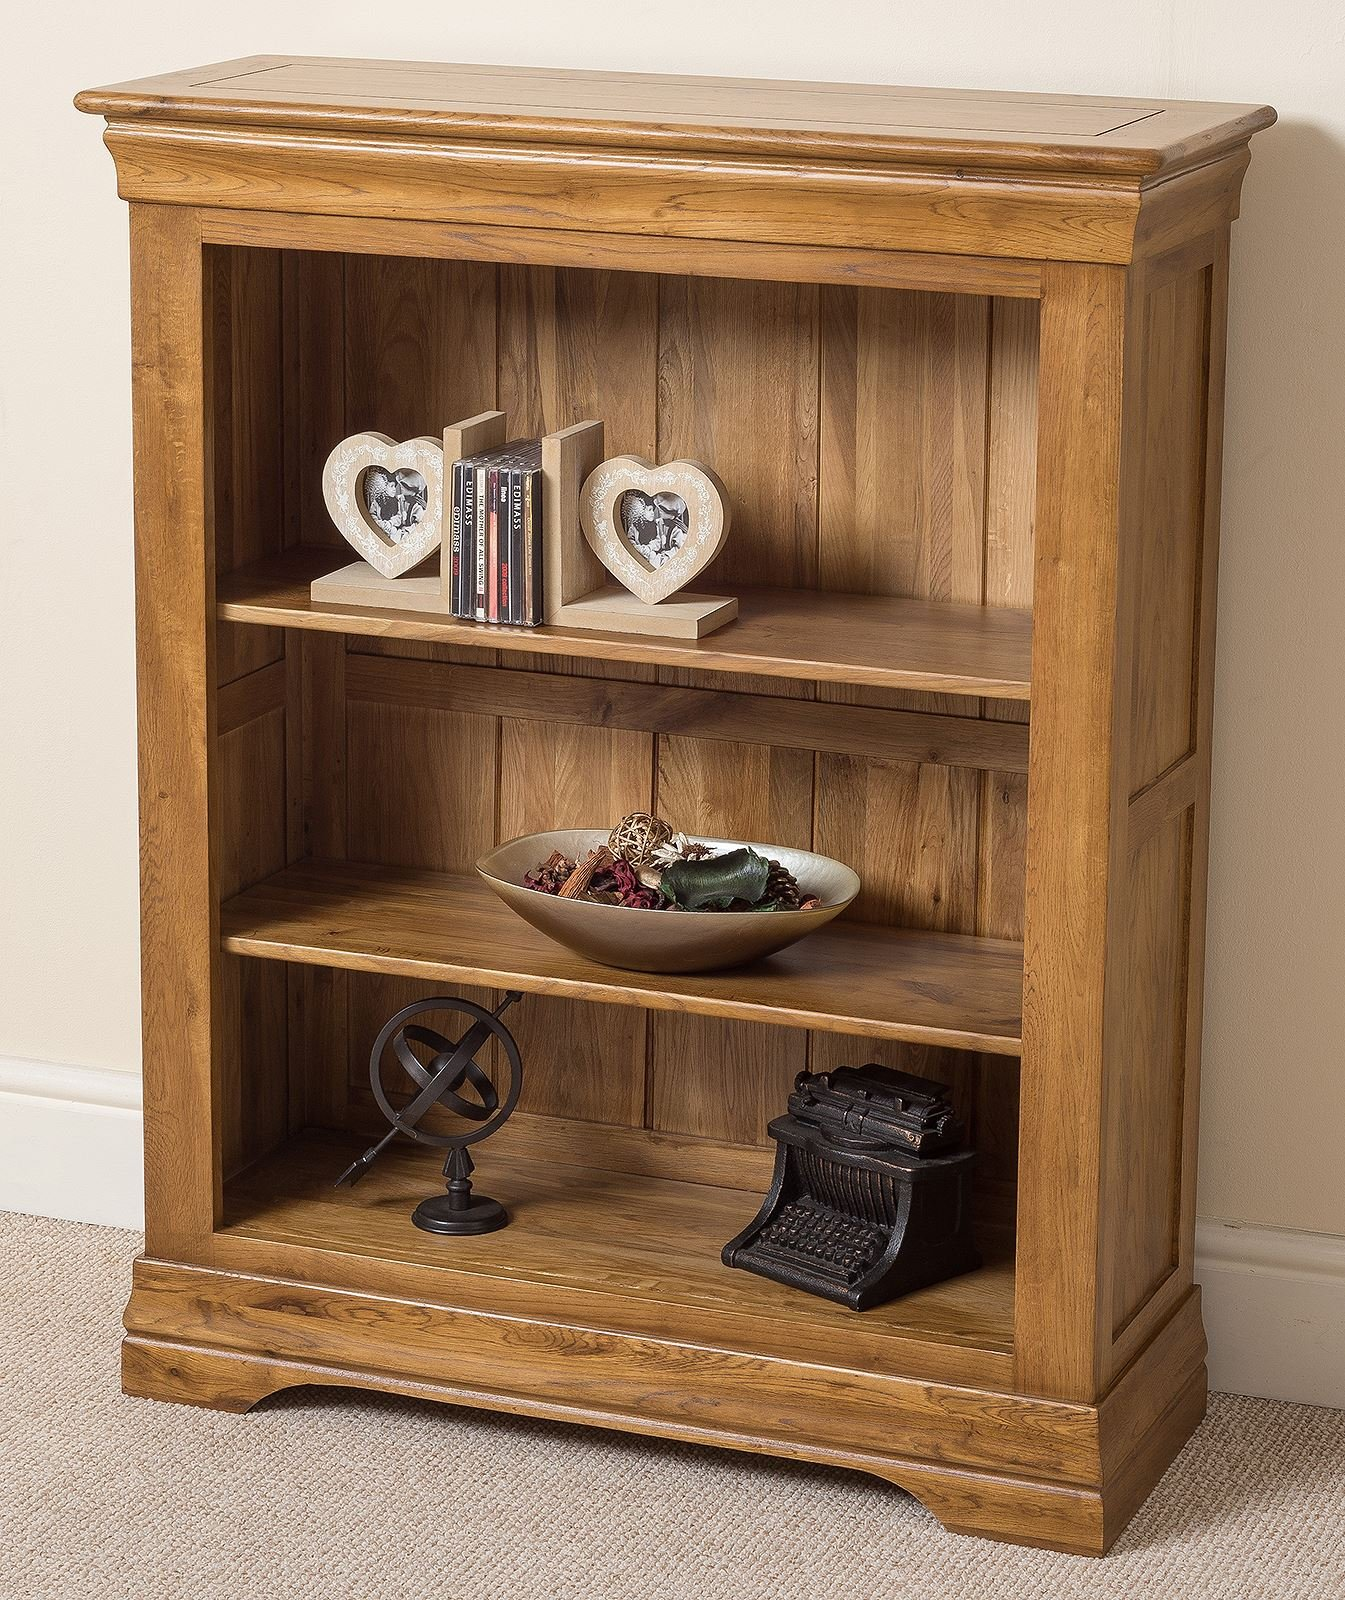 French Rustic Small Solid Oak Bookcase With Shelves Office Furniture 89 W X 33 D